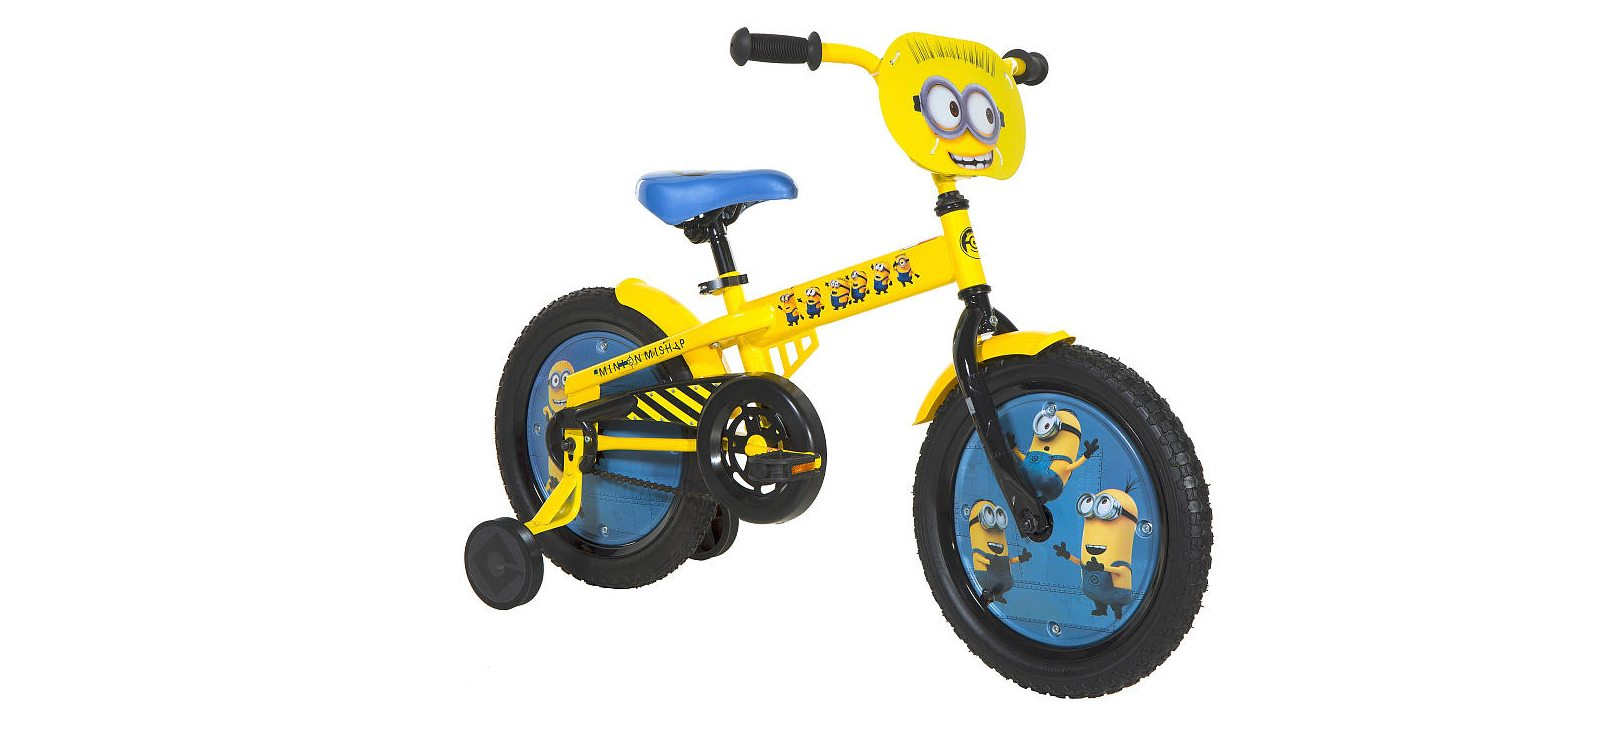 GeekDad Giveaway: Win a 'Minions' Bike From Dynacraft